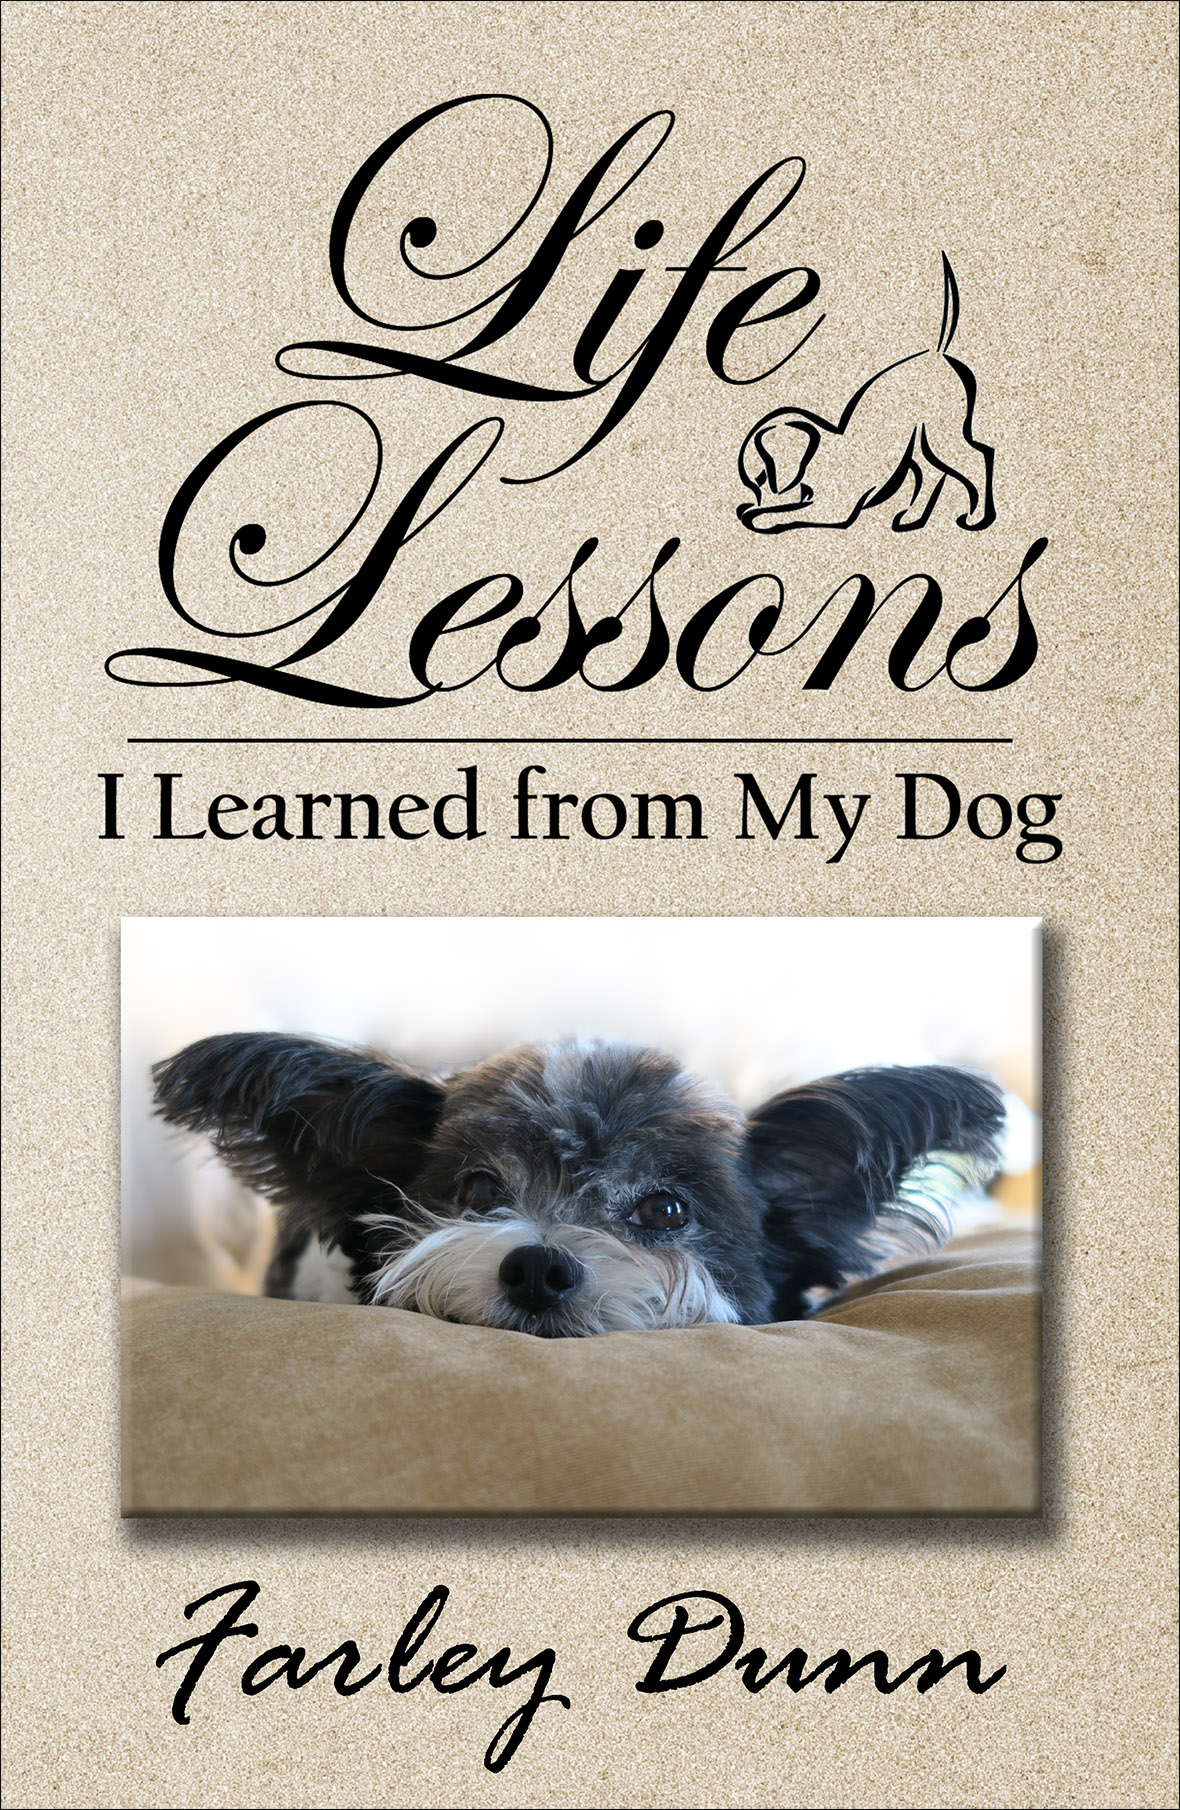 Life Lessons cover front reduced for web insertion